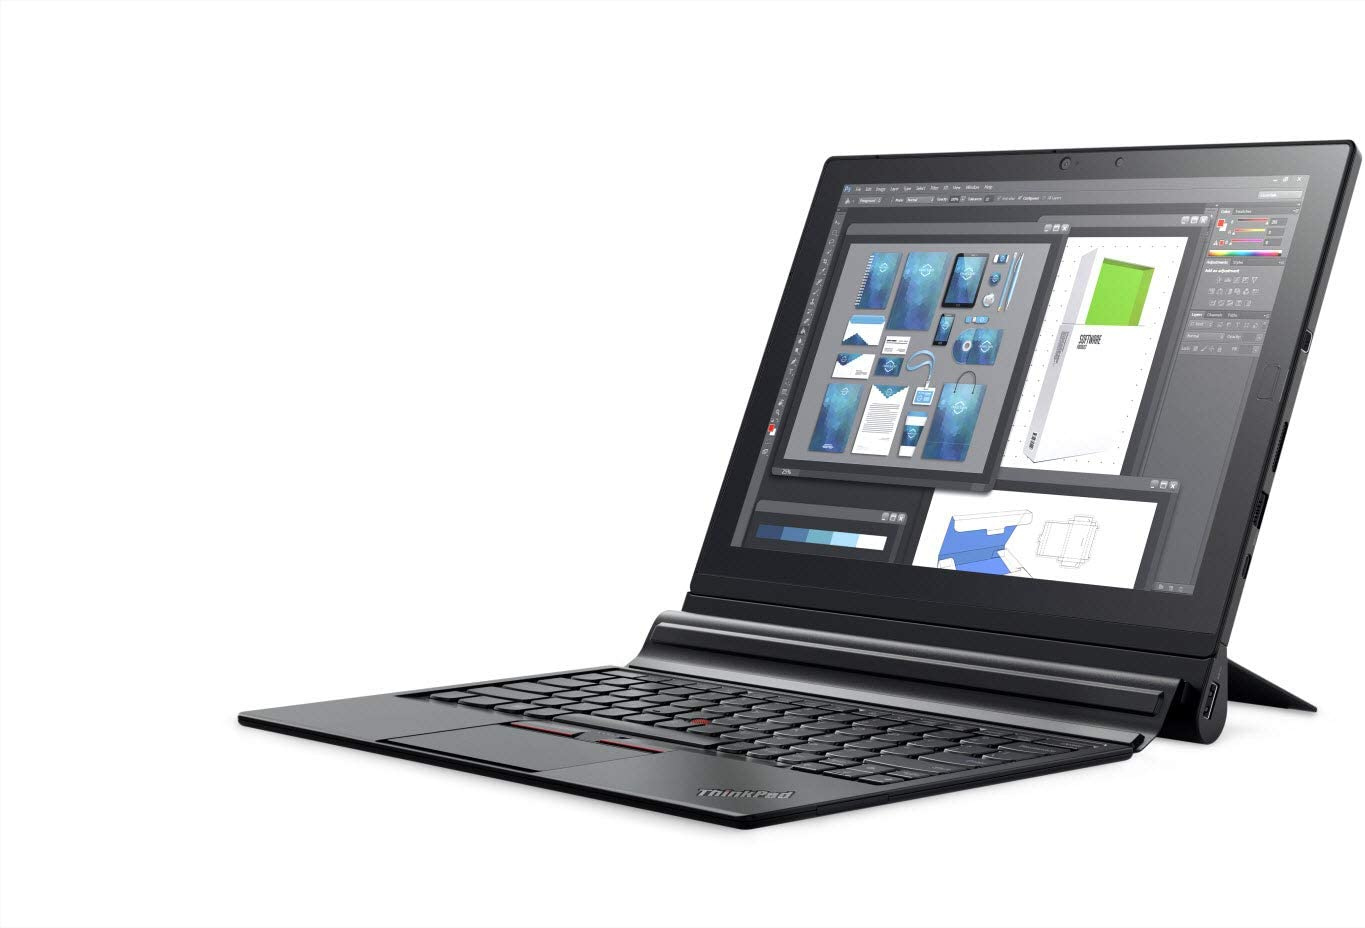 "Lenovo ThinkPad X1 2-in-1 Tablet Laptop (12"" (2160x1440) IPS FHD+ Touchscreen, Intel Core m7-6Y75, 256GB SSD, 8GB RAM, Detachable Keys, Only 1.7lbs, Windows 10 Professional)"